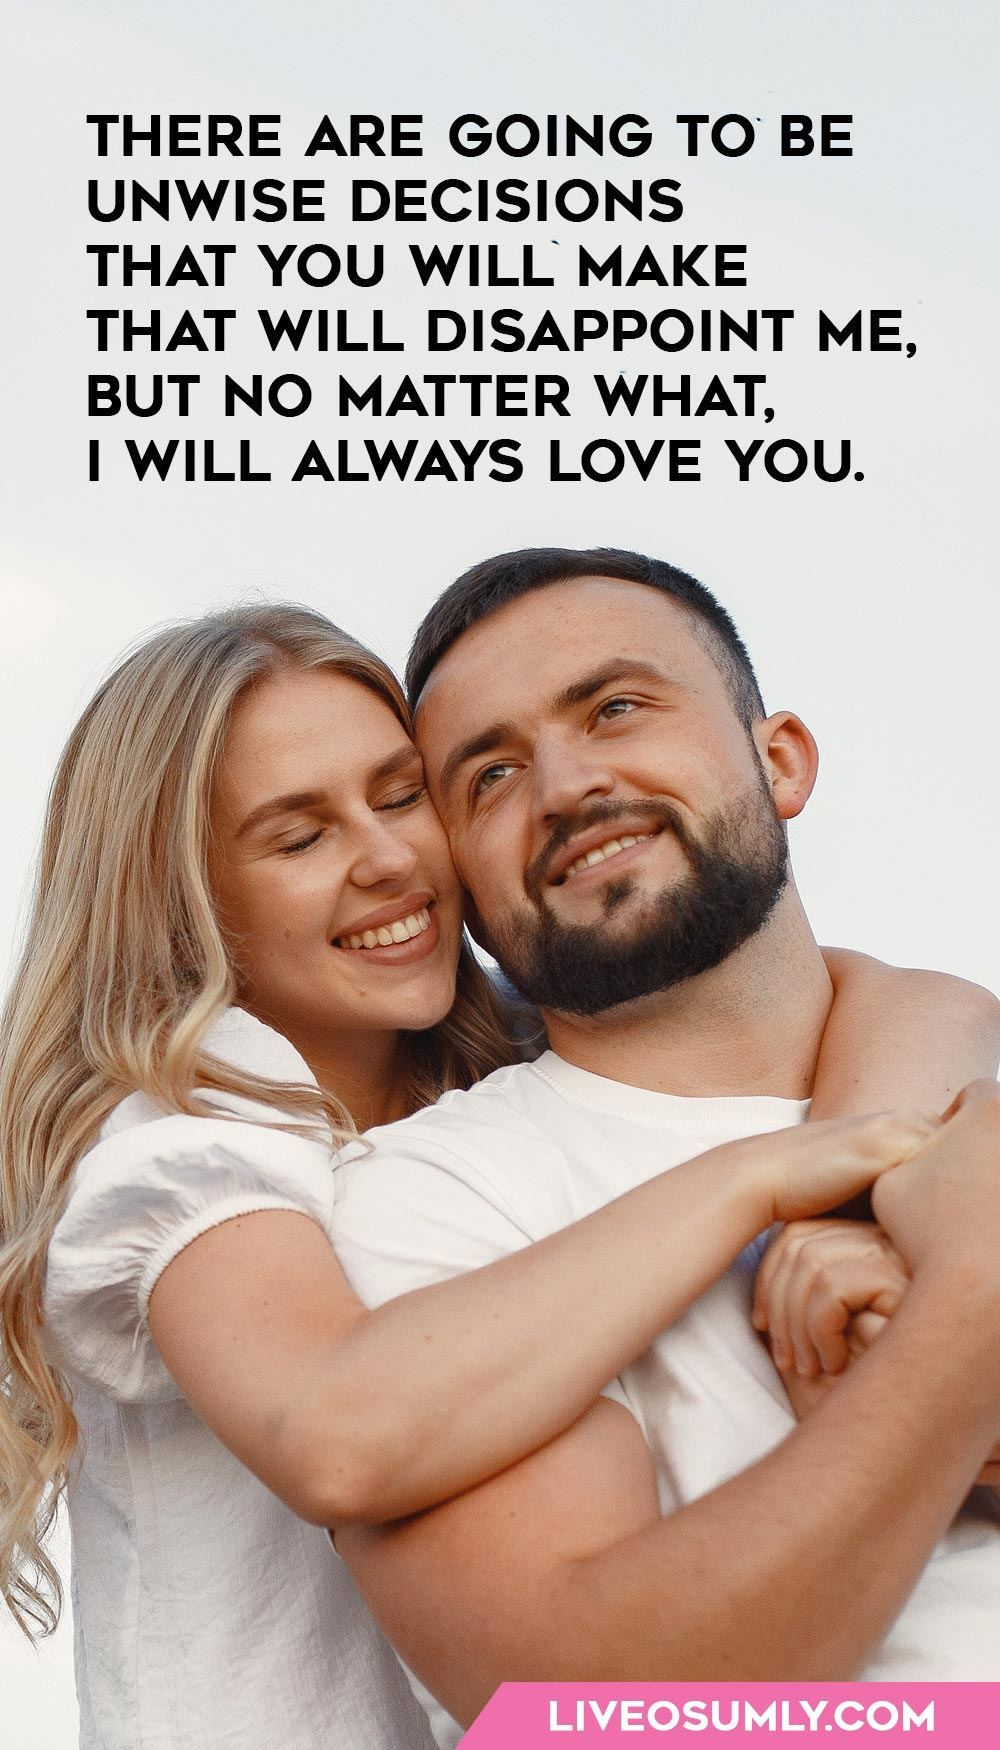 50. I love you quotes